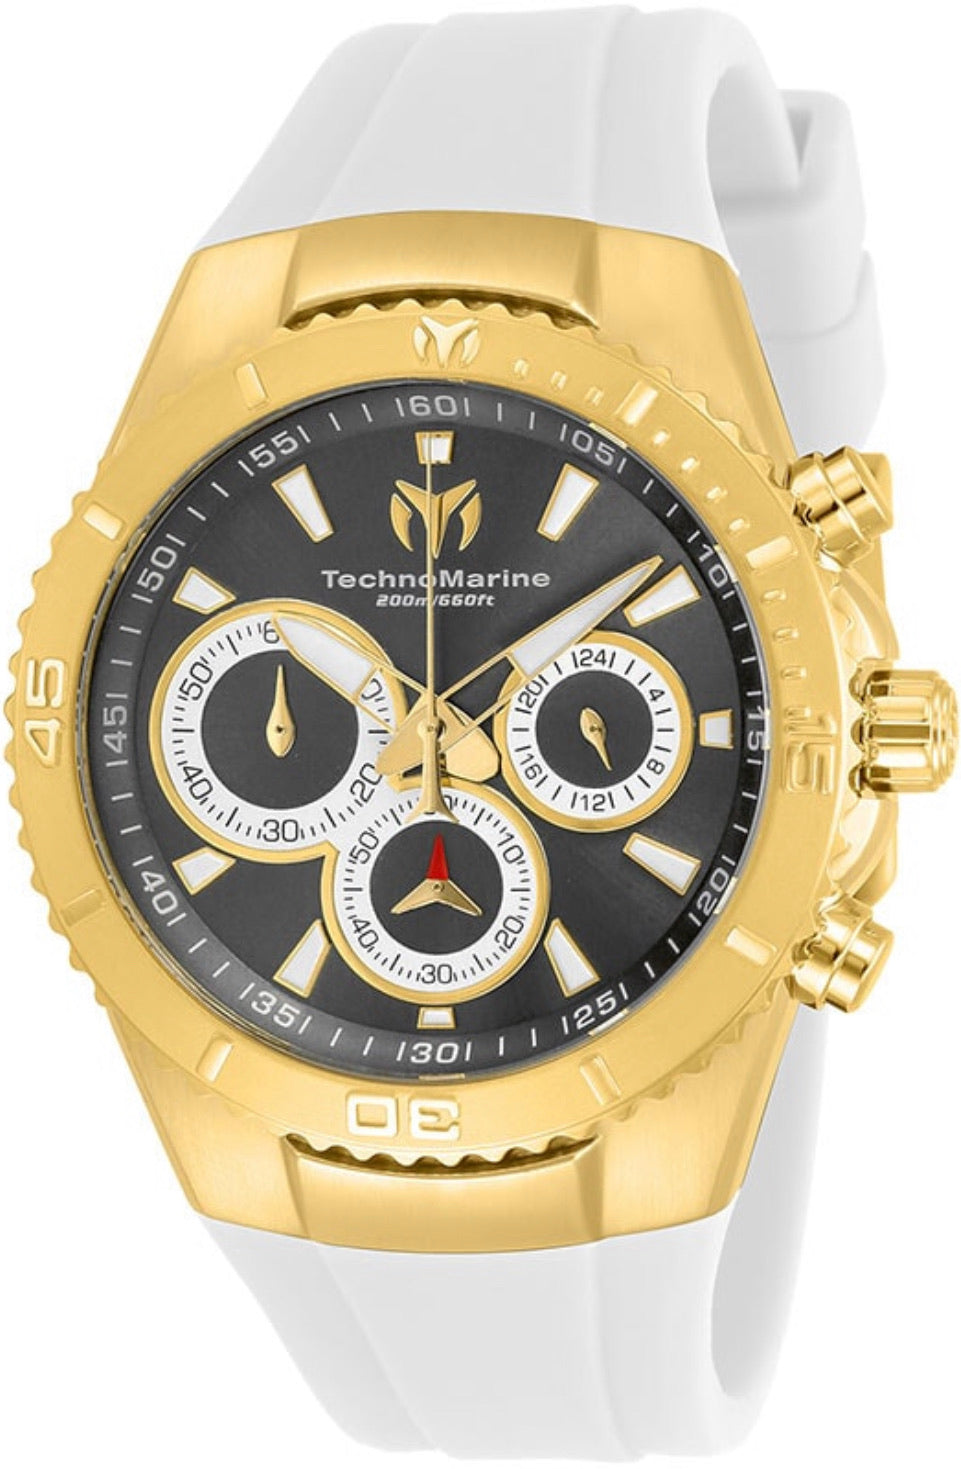 TECHNOMARINE MANTA MENS QUARTZ 40MM STAINLESS STEEL WHITE CASE METAL DIAL - MODEL TM-218038 - Boutique Watches & More